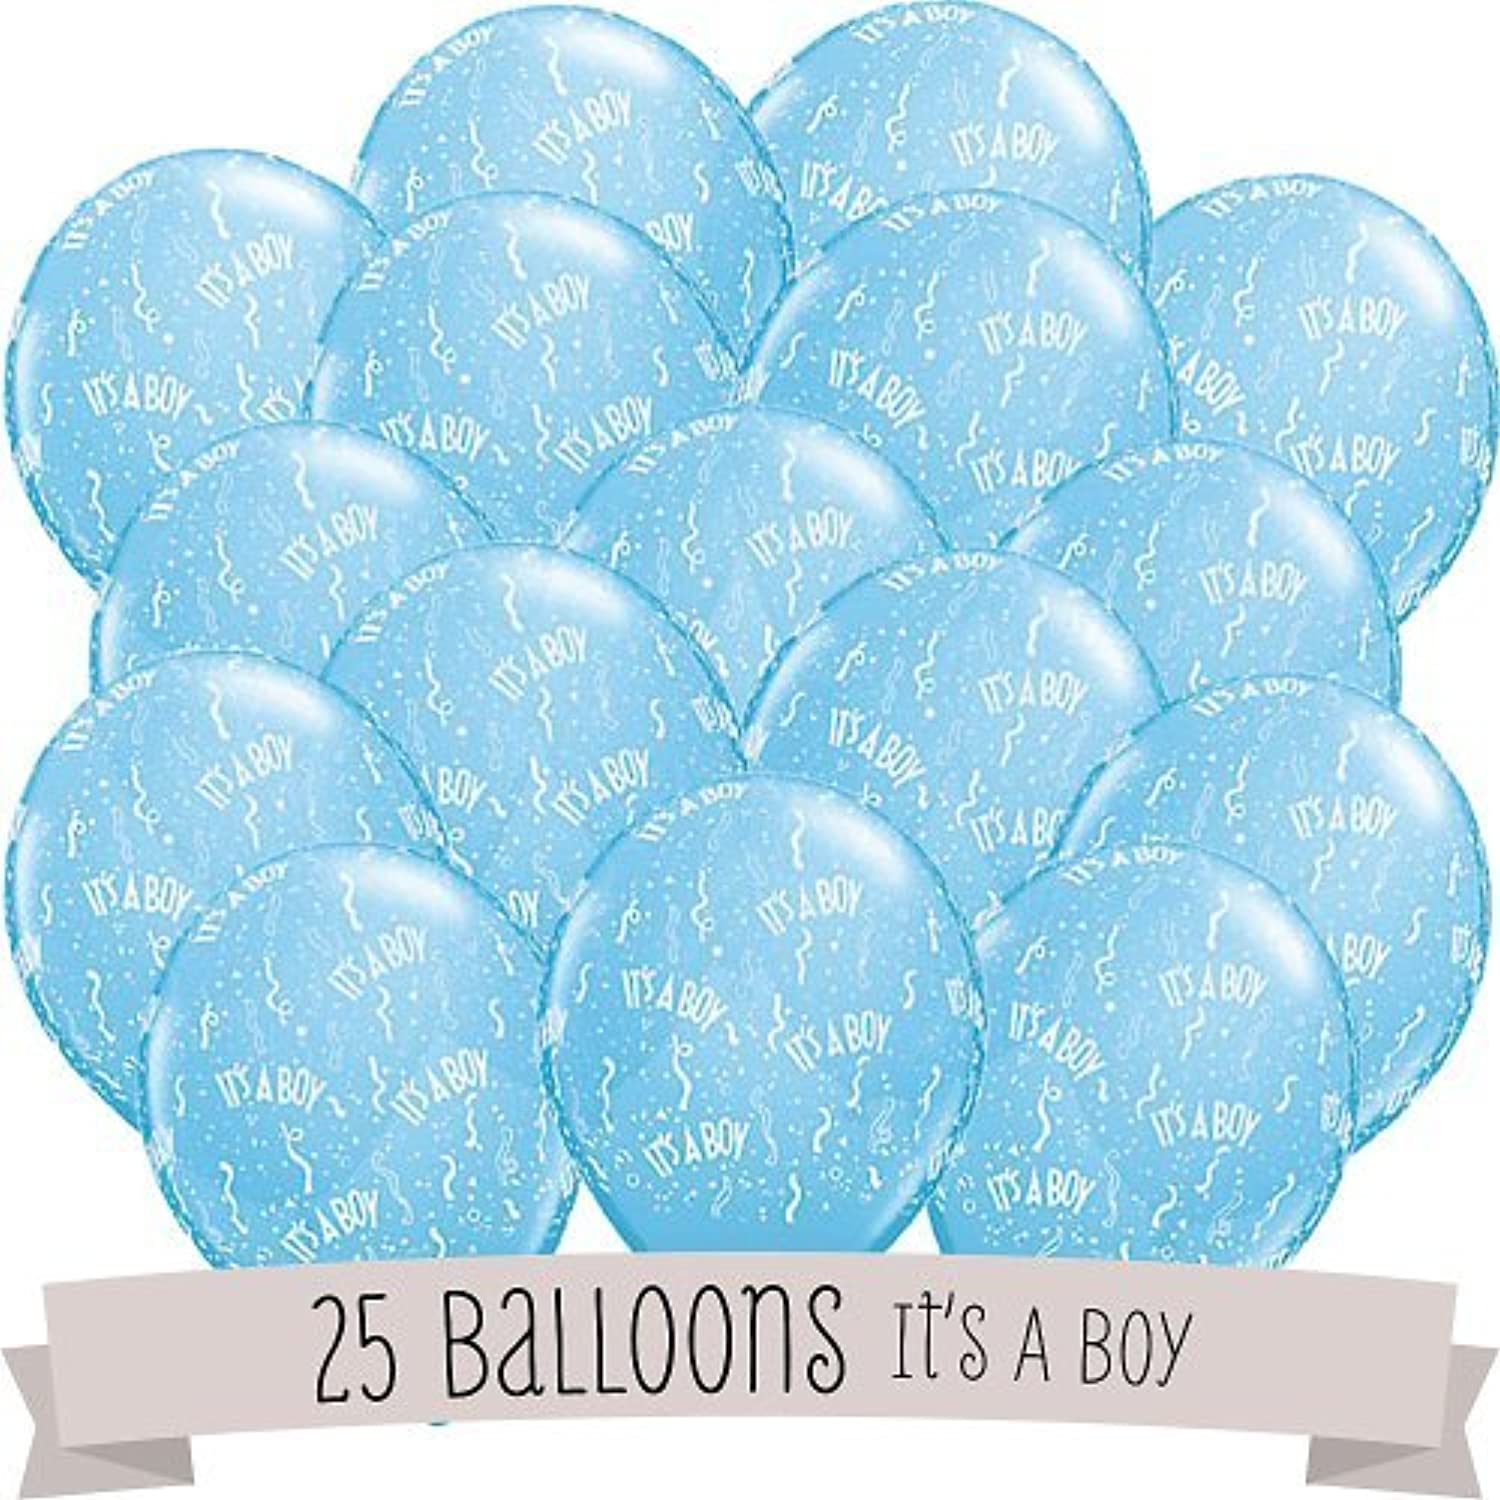 It's A Boy   Baby Shower Balloons  25 ct by BigDotOfHappiness